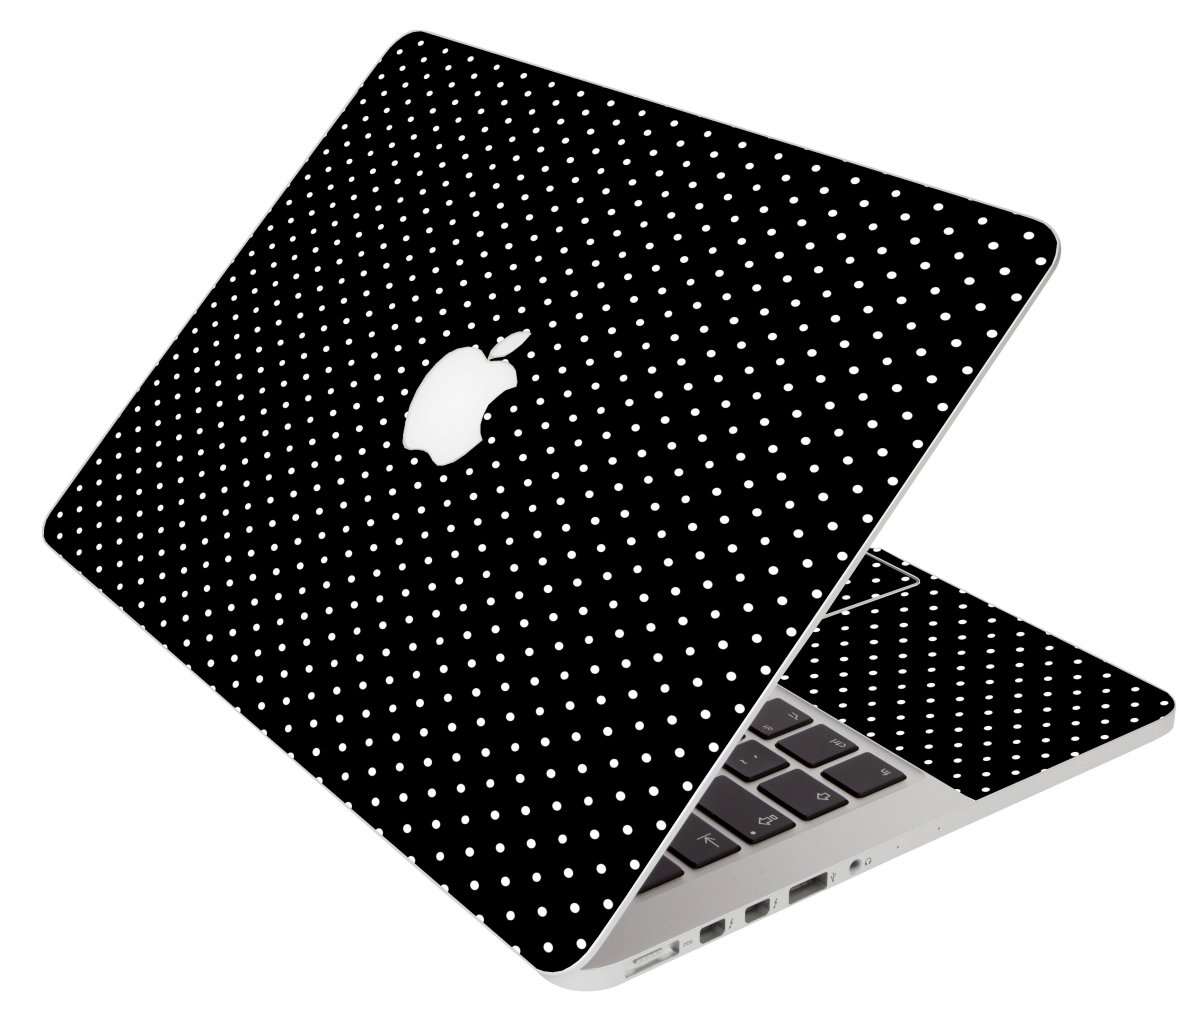 Black Polka Dots Apple Macbook Original 13 A1181 Laptop Skin